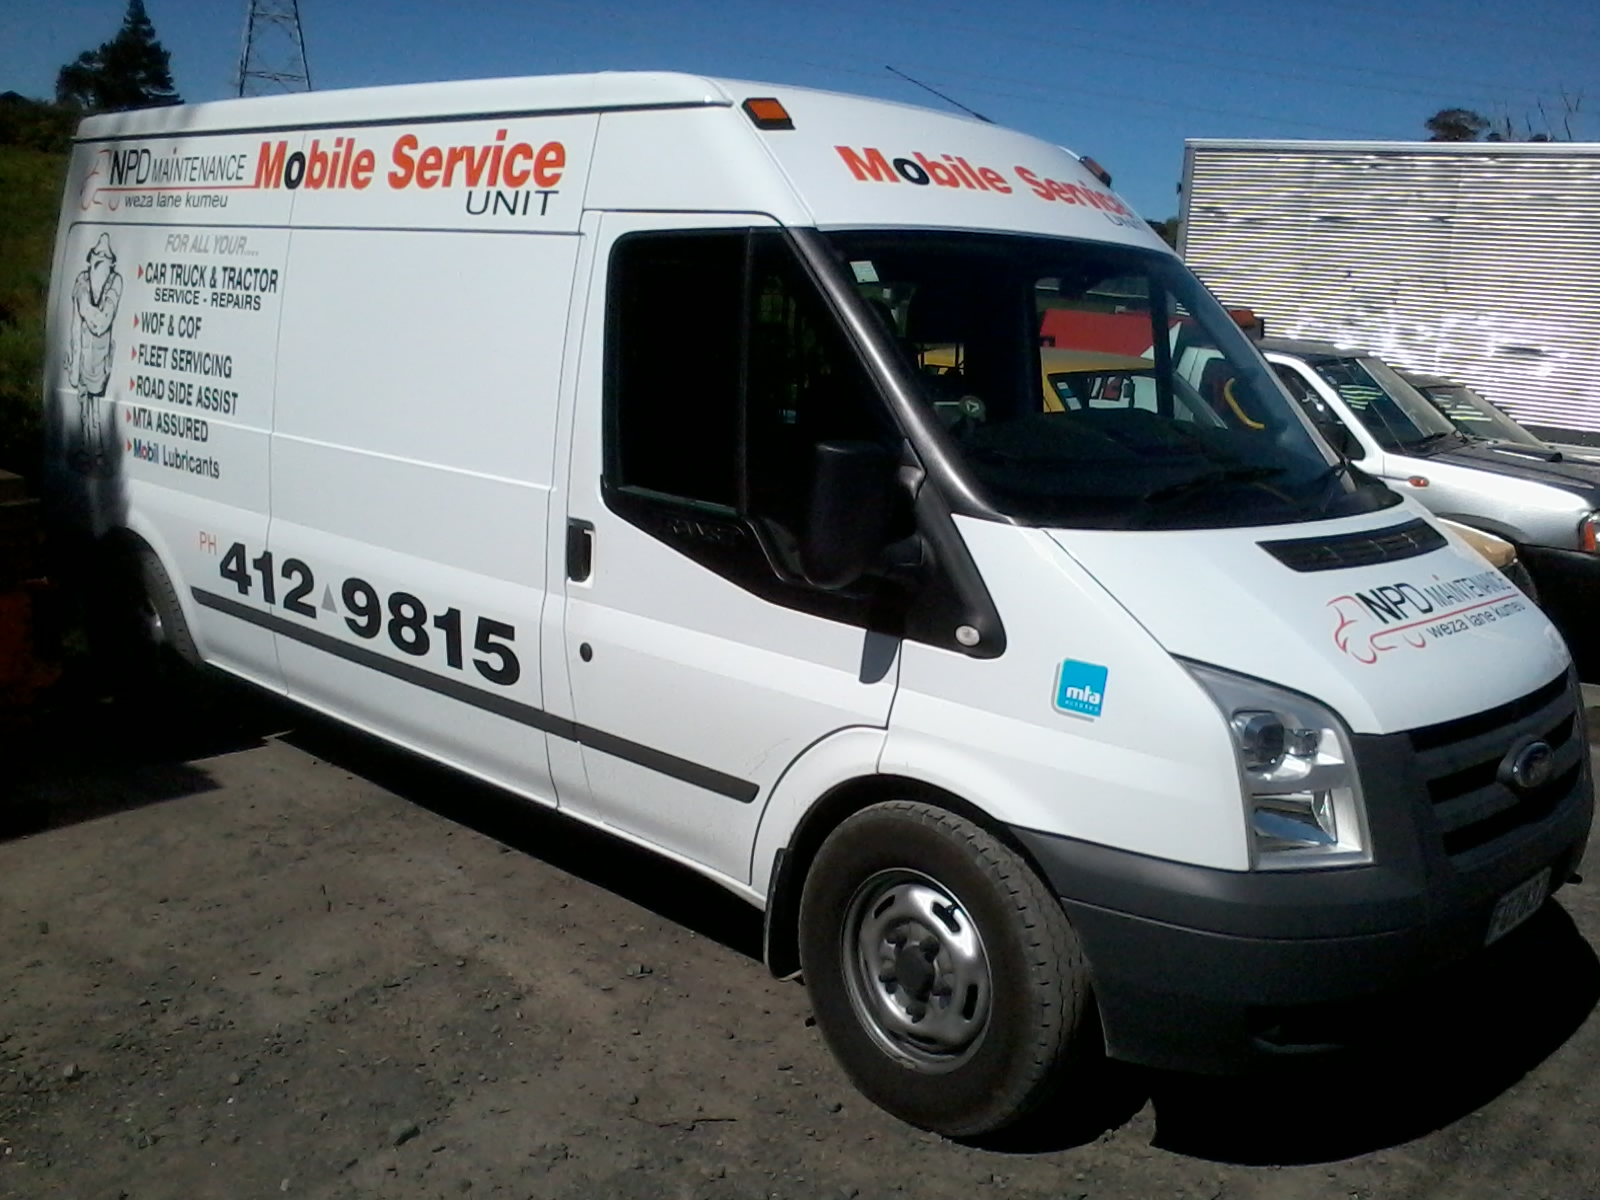 On-site servicing